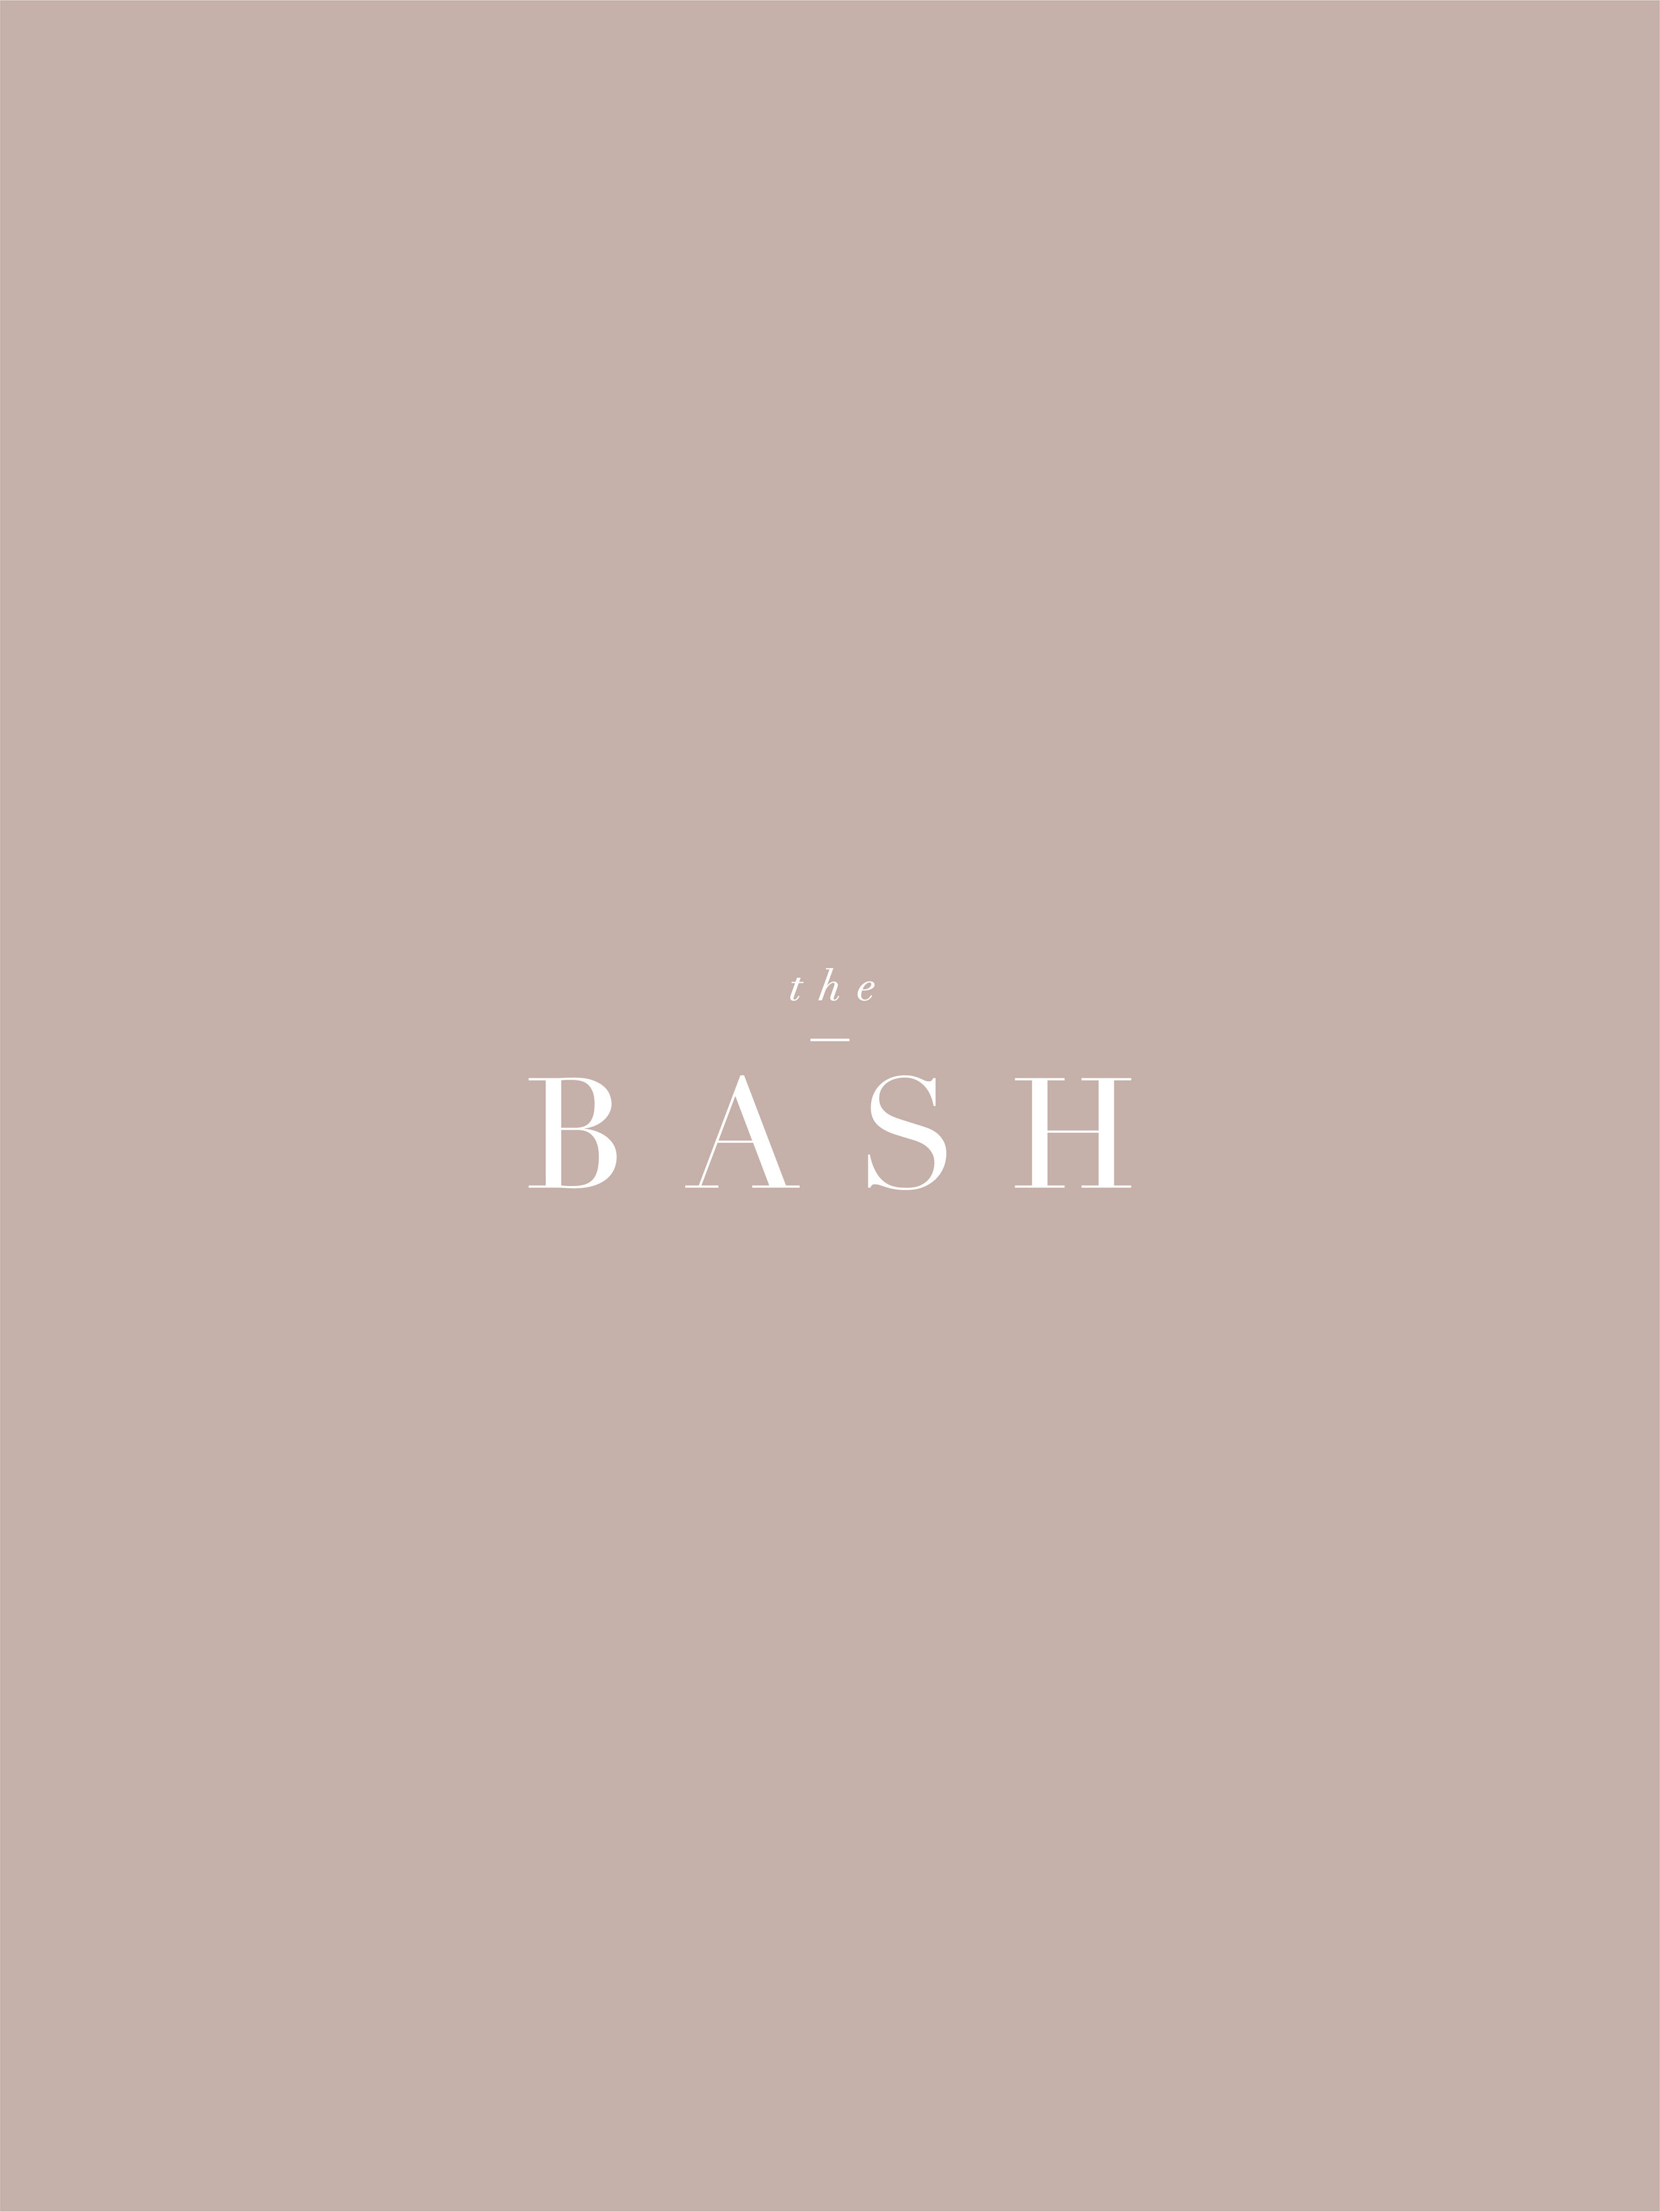 the-bash-calgary-wedding-event-swell-yyc-graphic-design-02.jpg